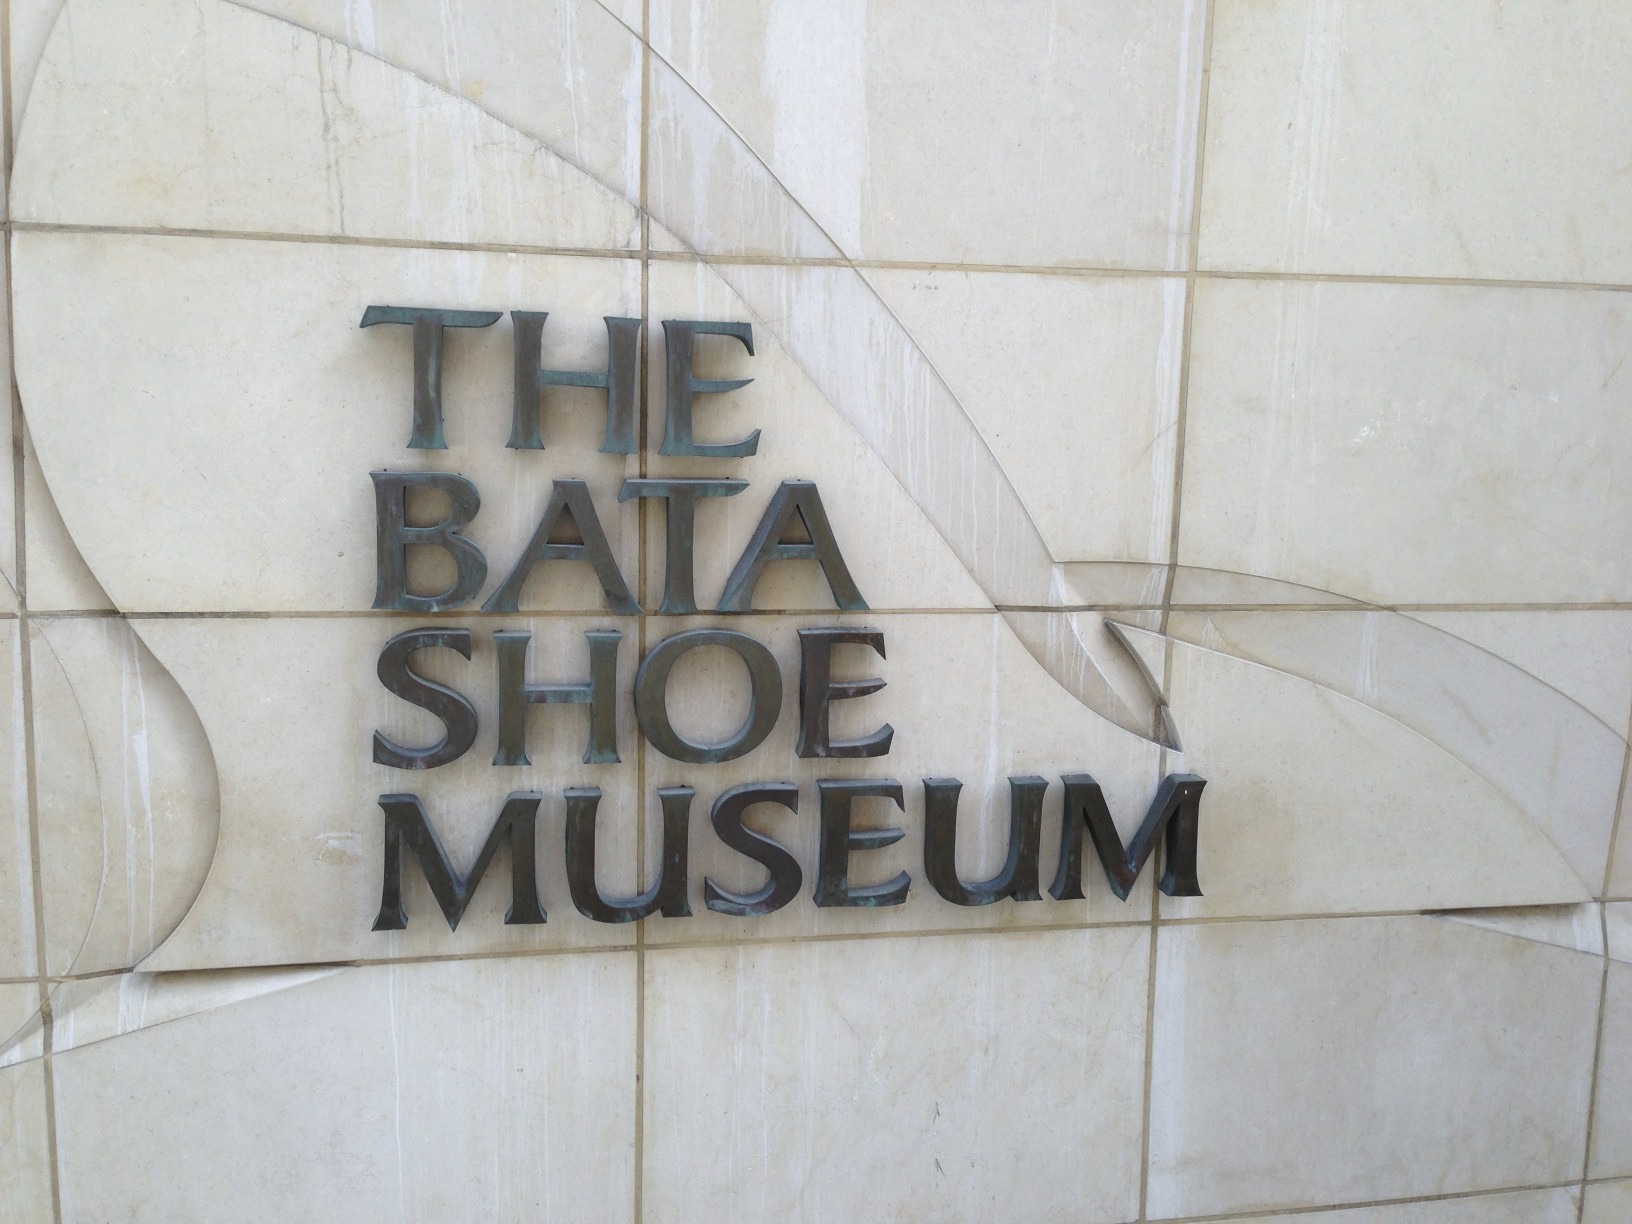 Yes, the Bata Shoe Museum.